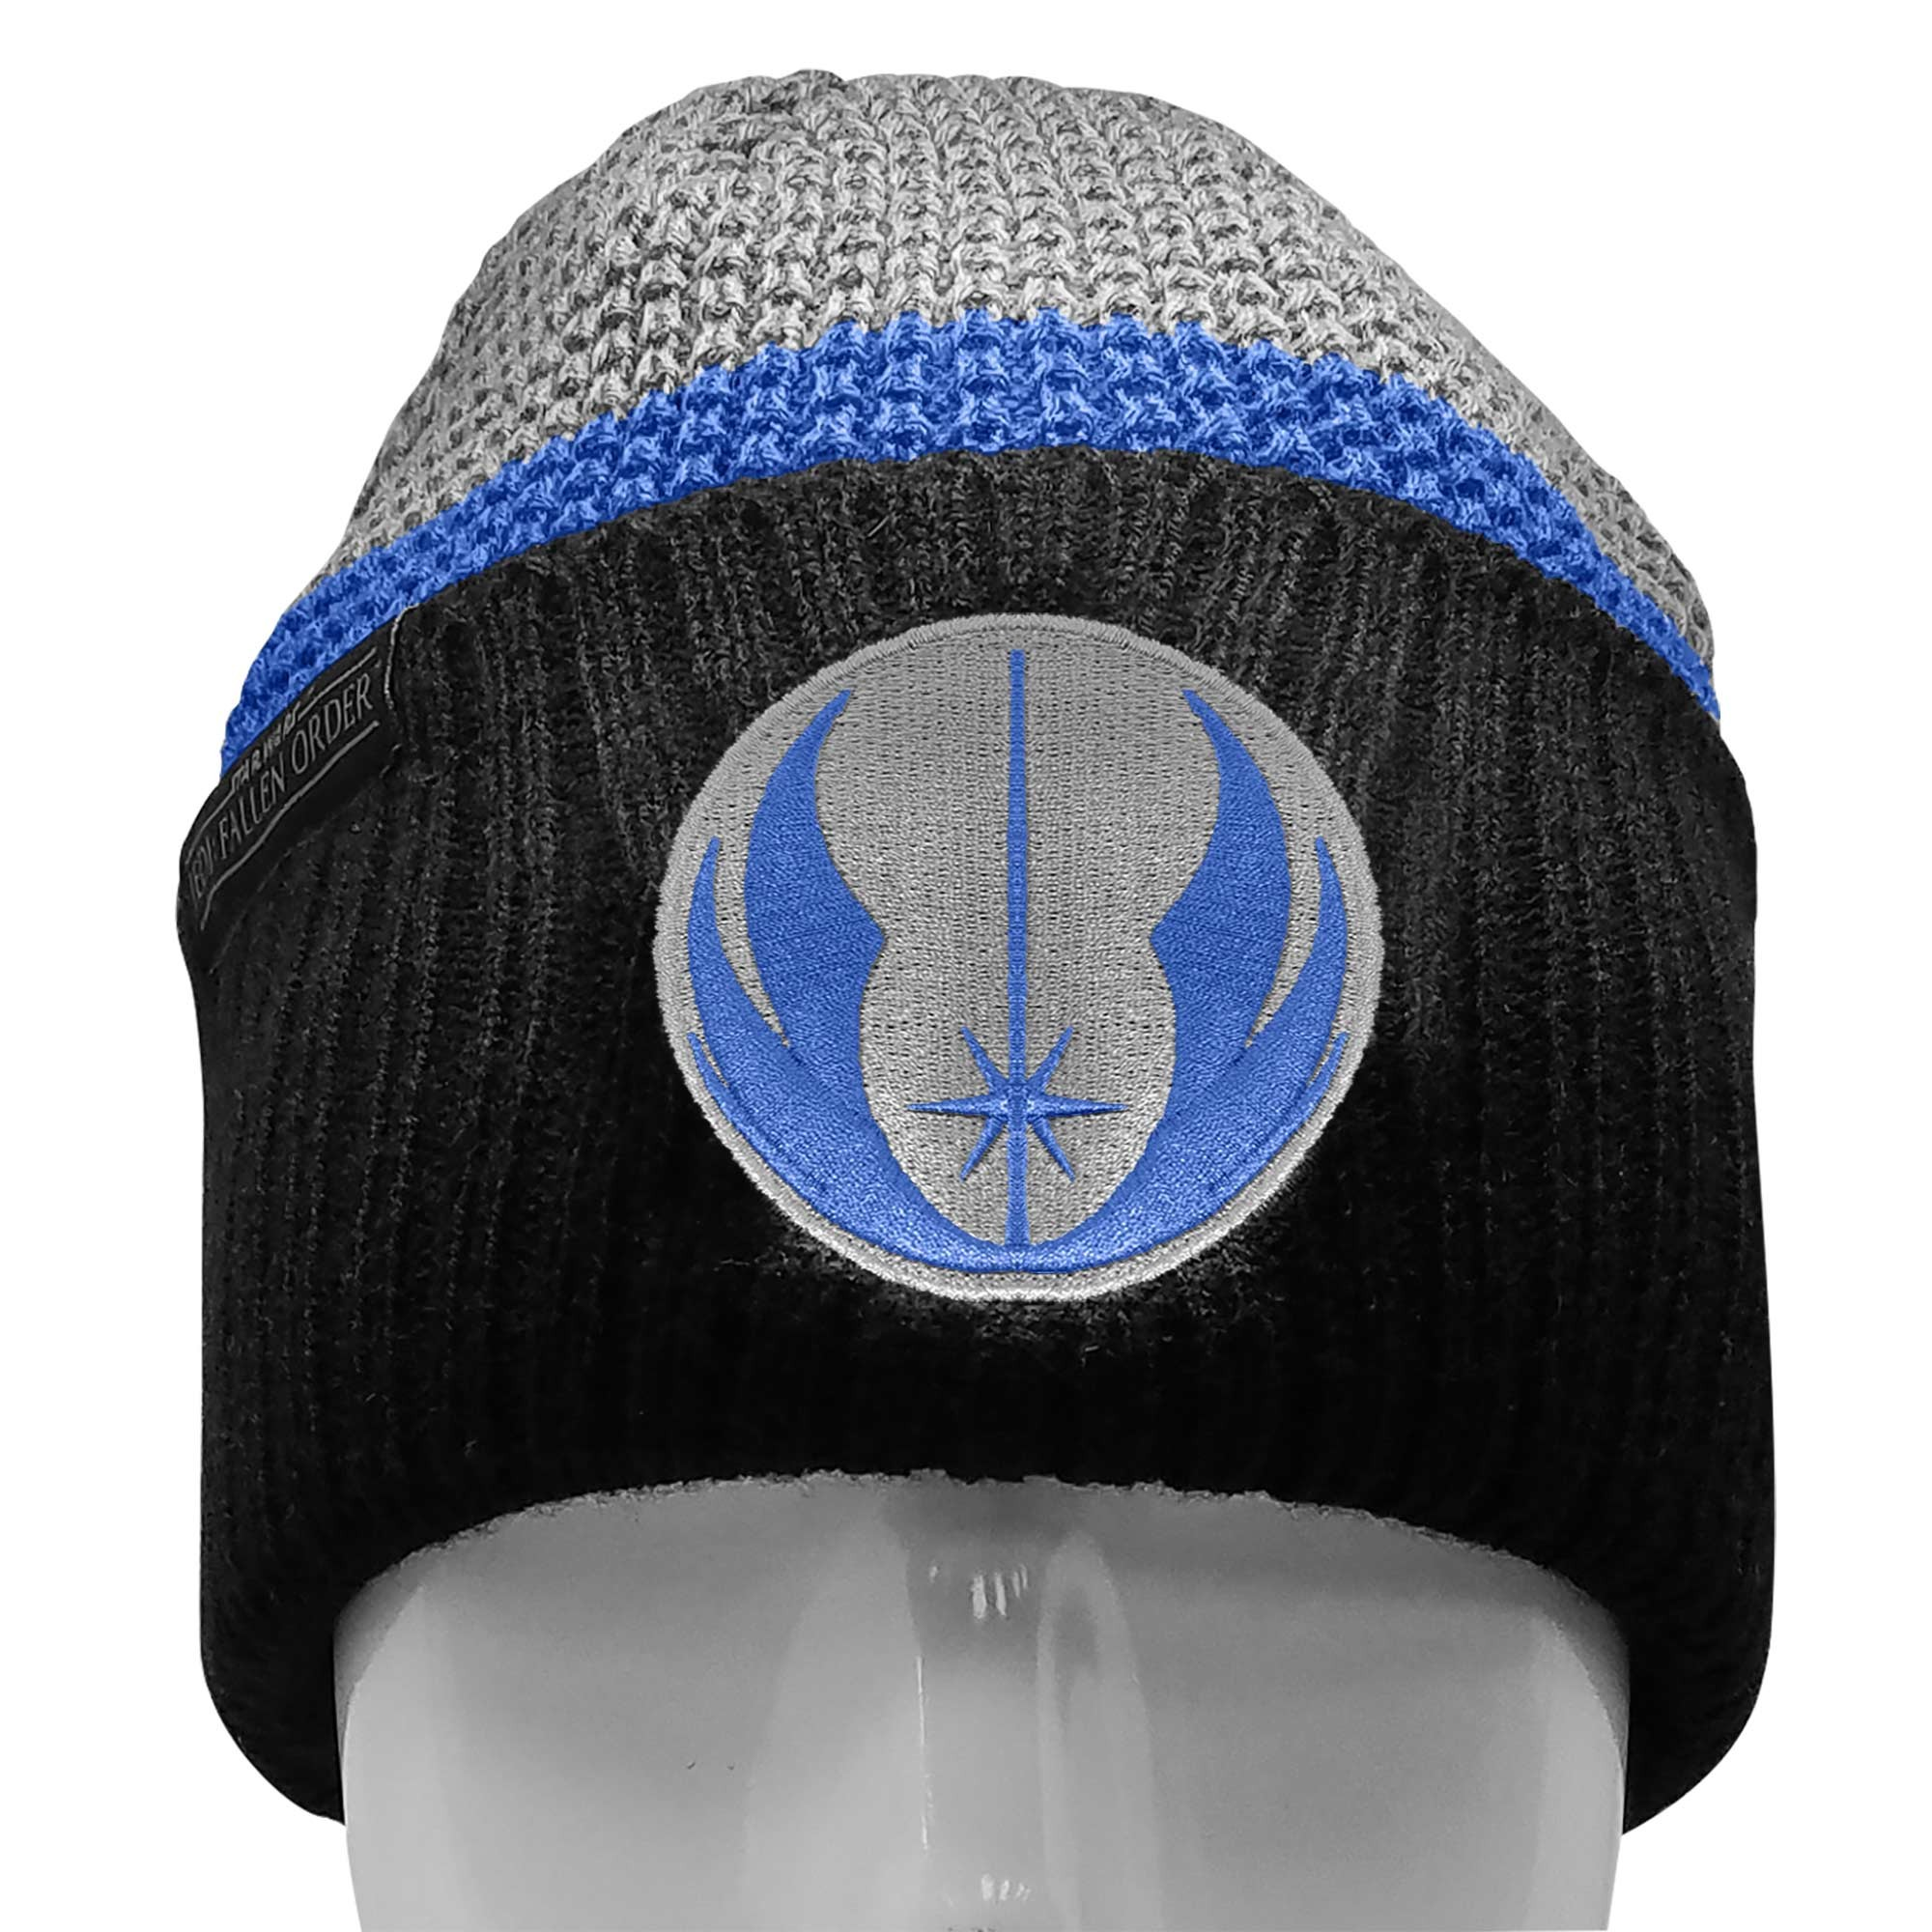 Star Wars Beanie with a Fallen Order Jedi Patch, Image 1